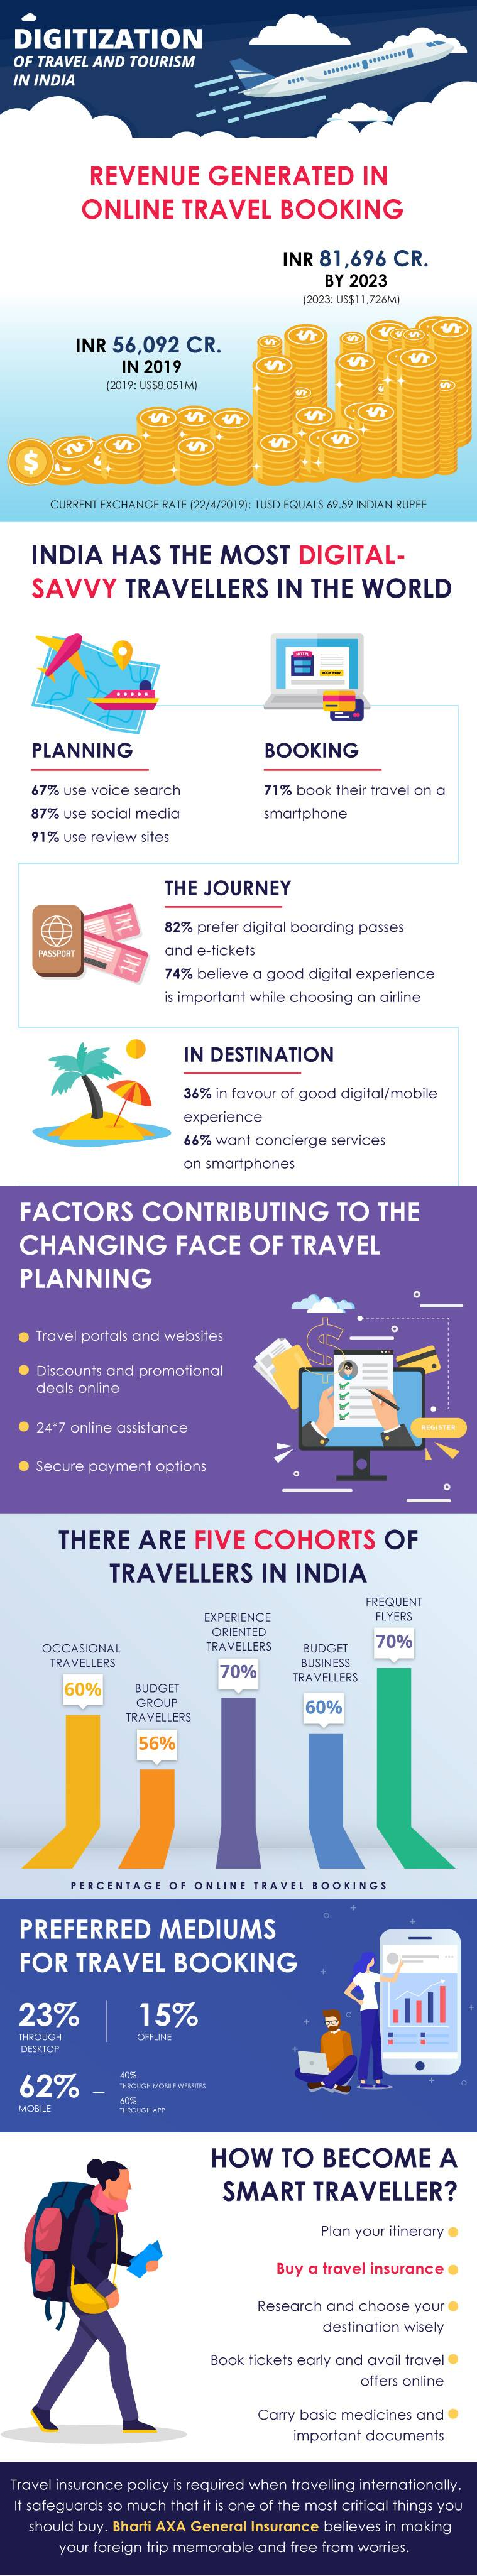 Digitization of travel and tourism in India